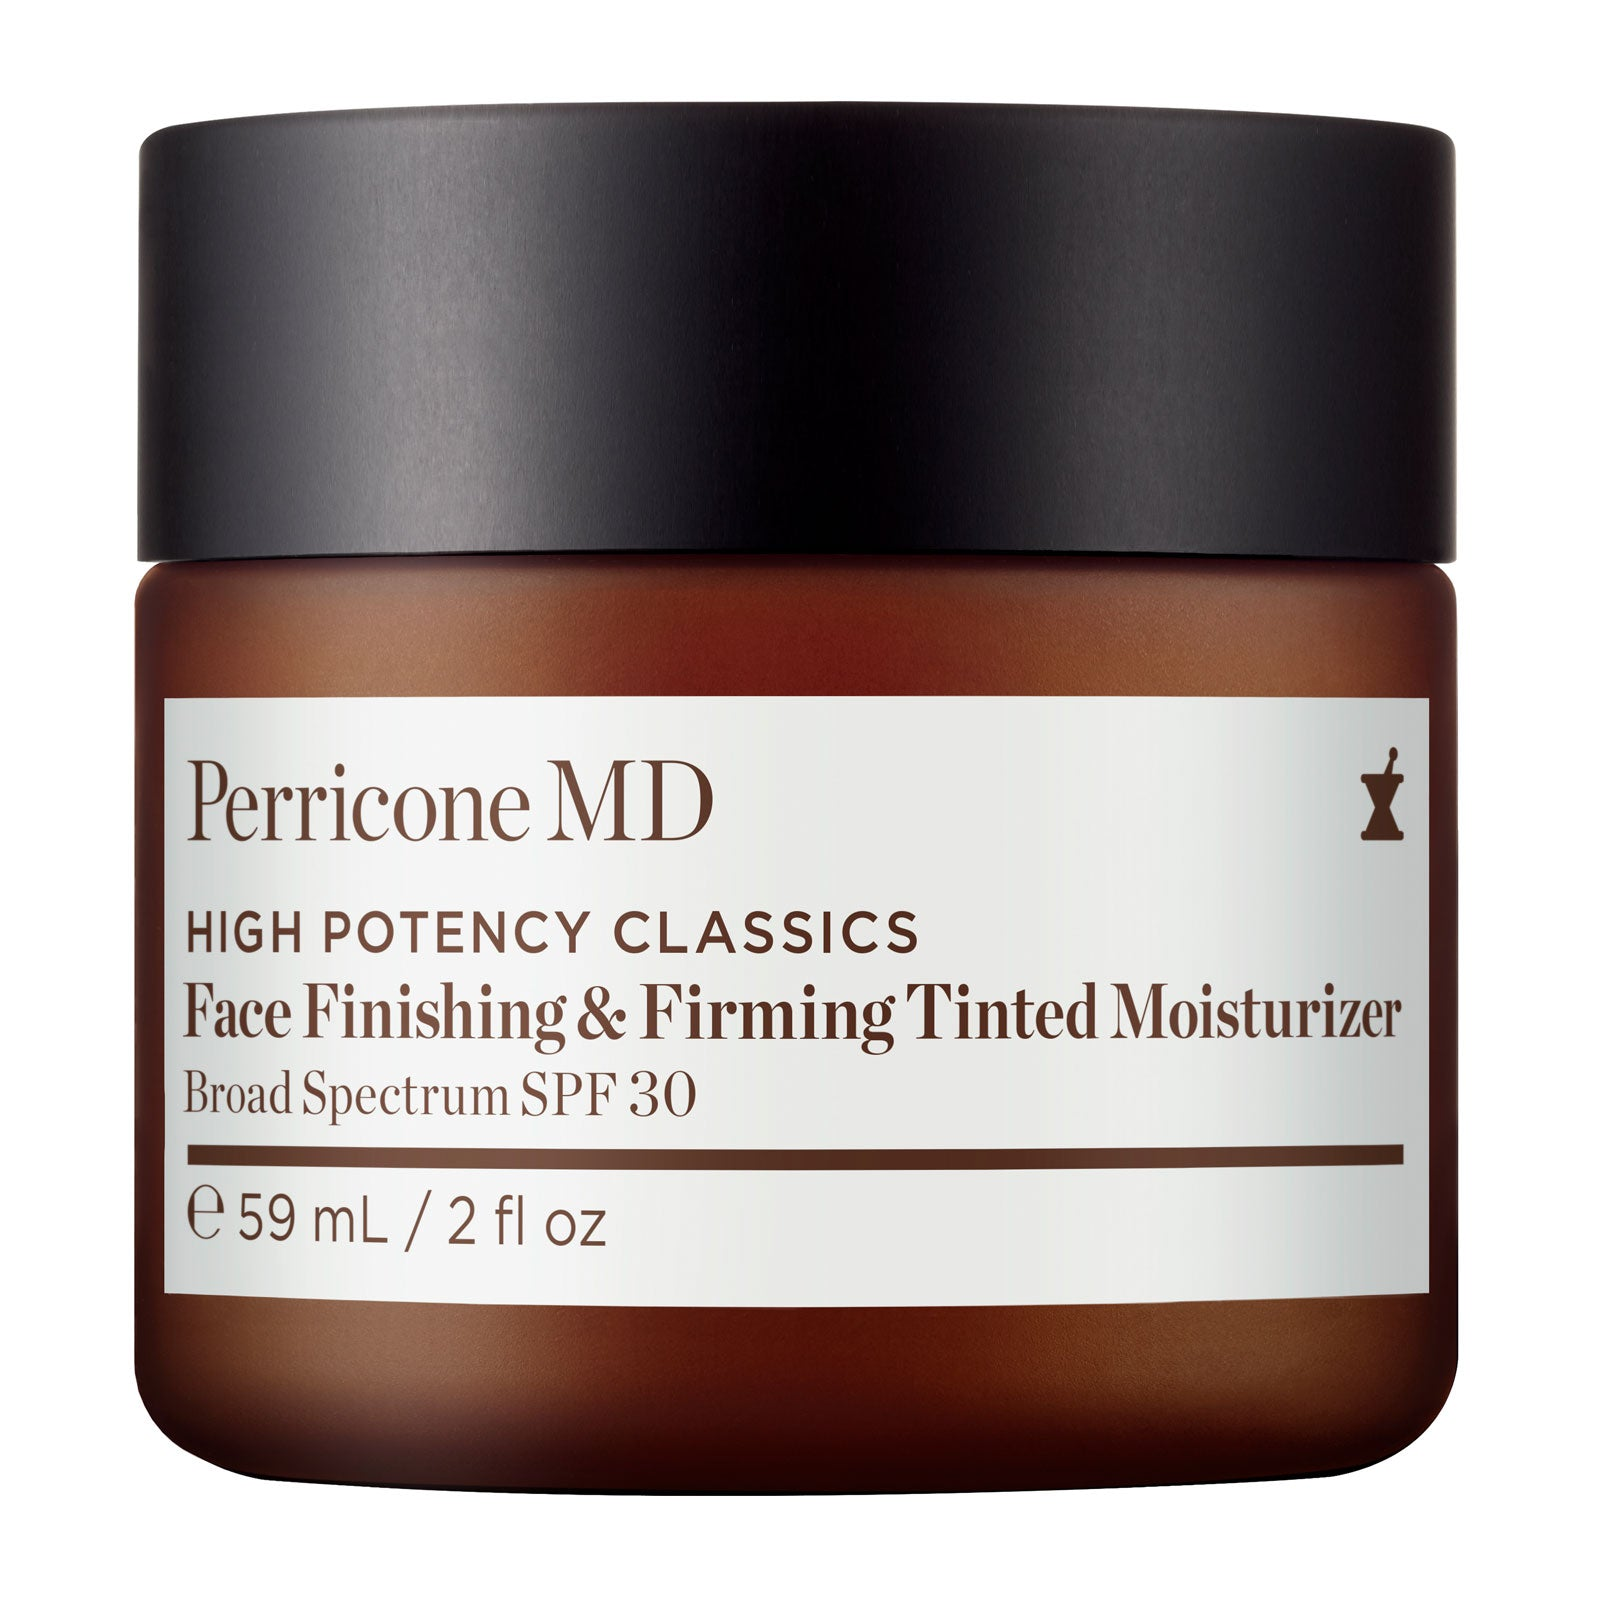 Perricone MD High Potency Classics Face Finishing & Firming Tinted Moisturizer Broad Spectrum SPF30 59ml